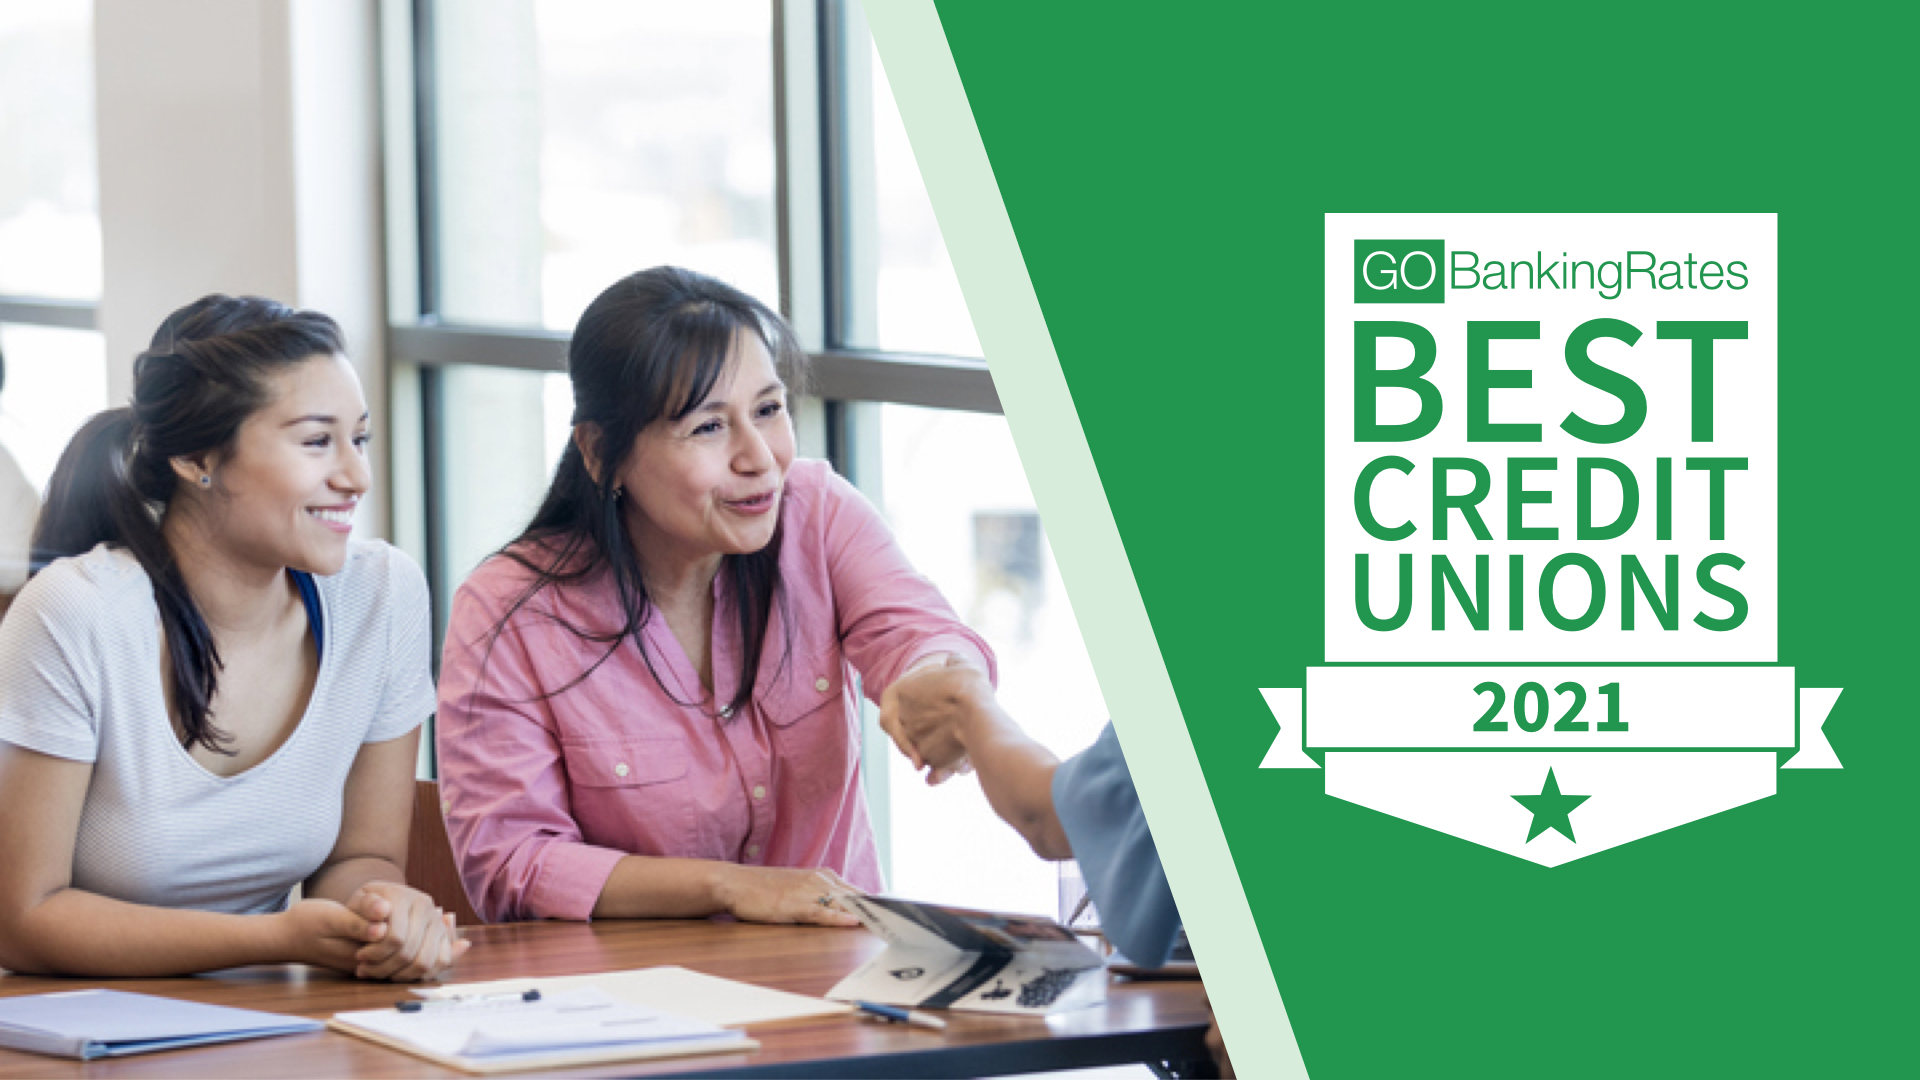 Best Credit Unions of 2021